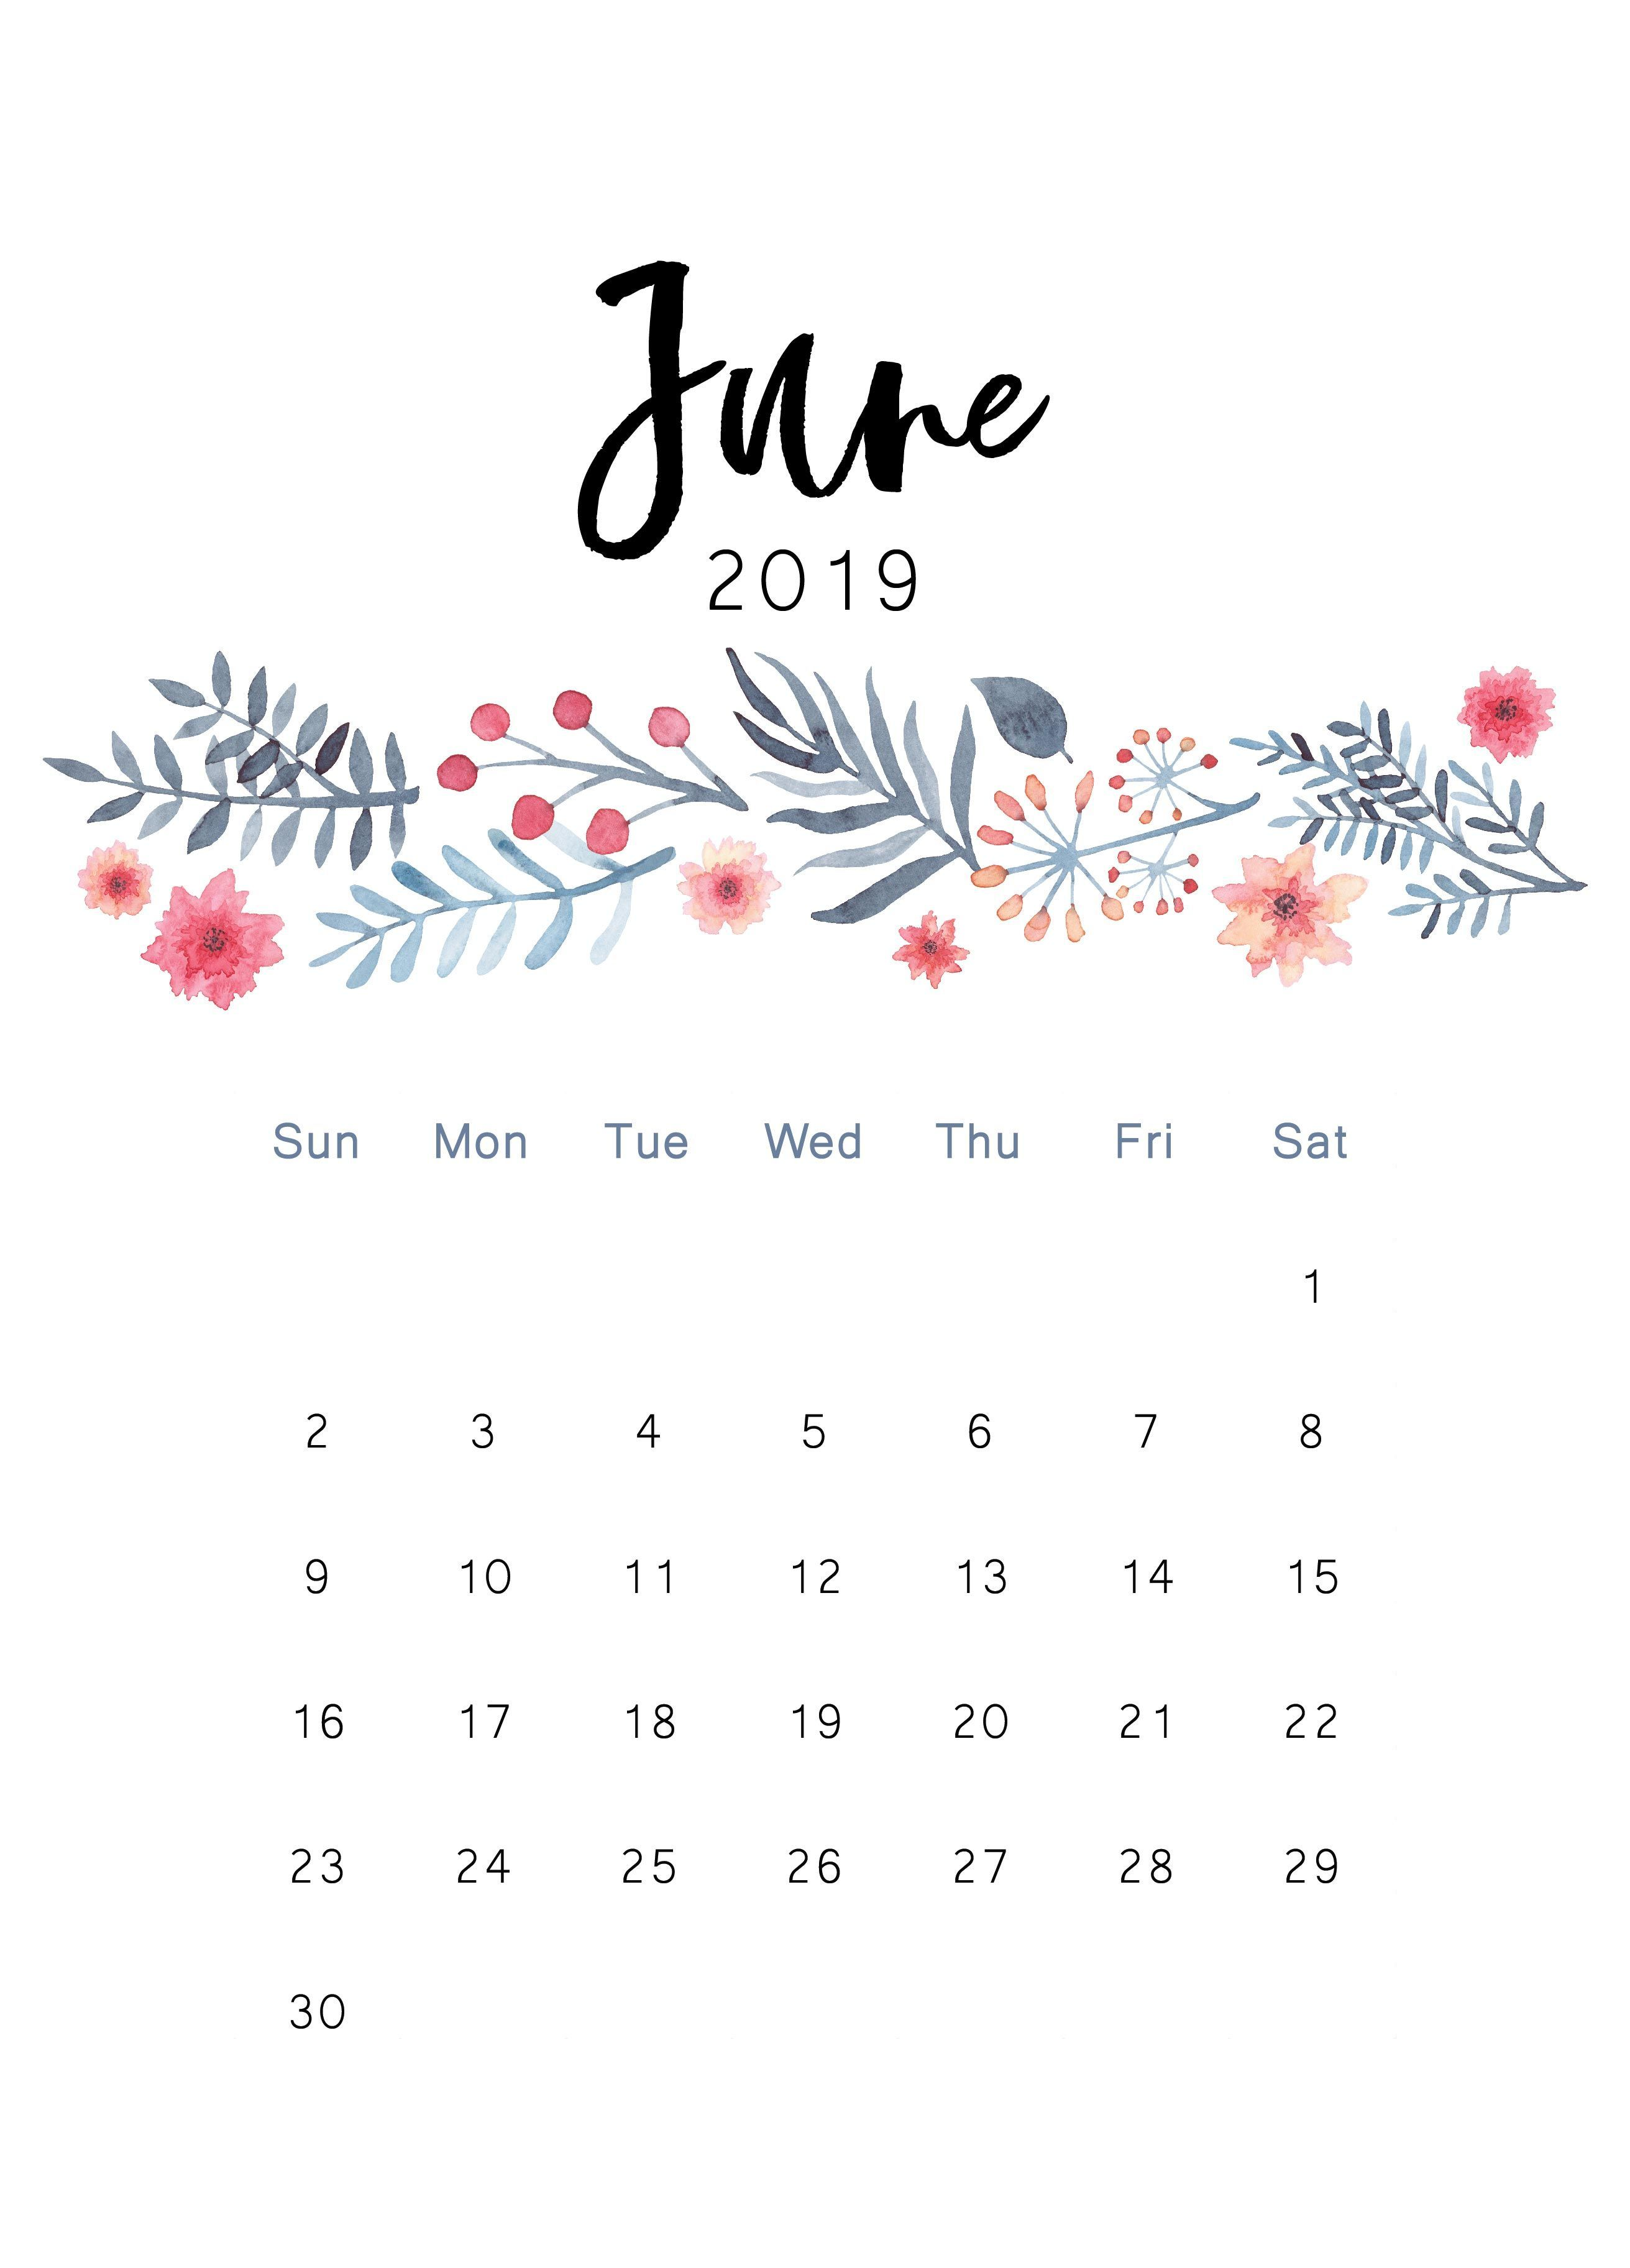 Cute August 2018 iPhone Calendar Wallpapers Calendar